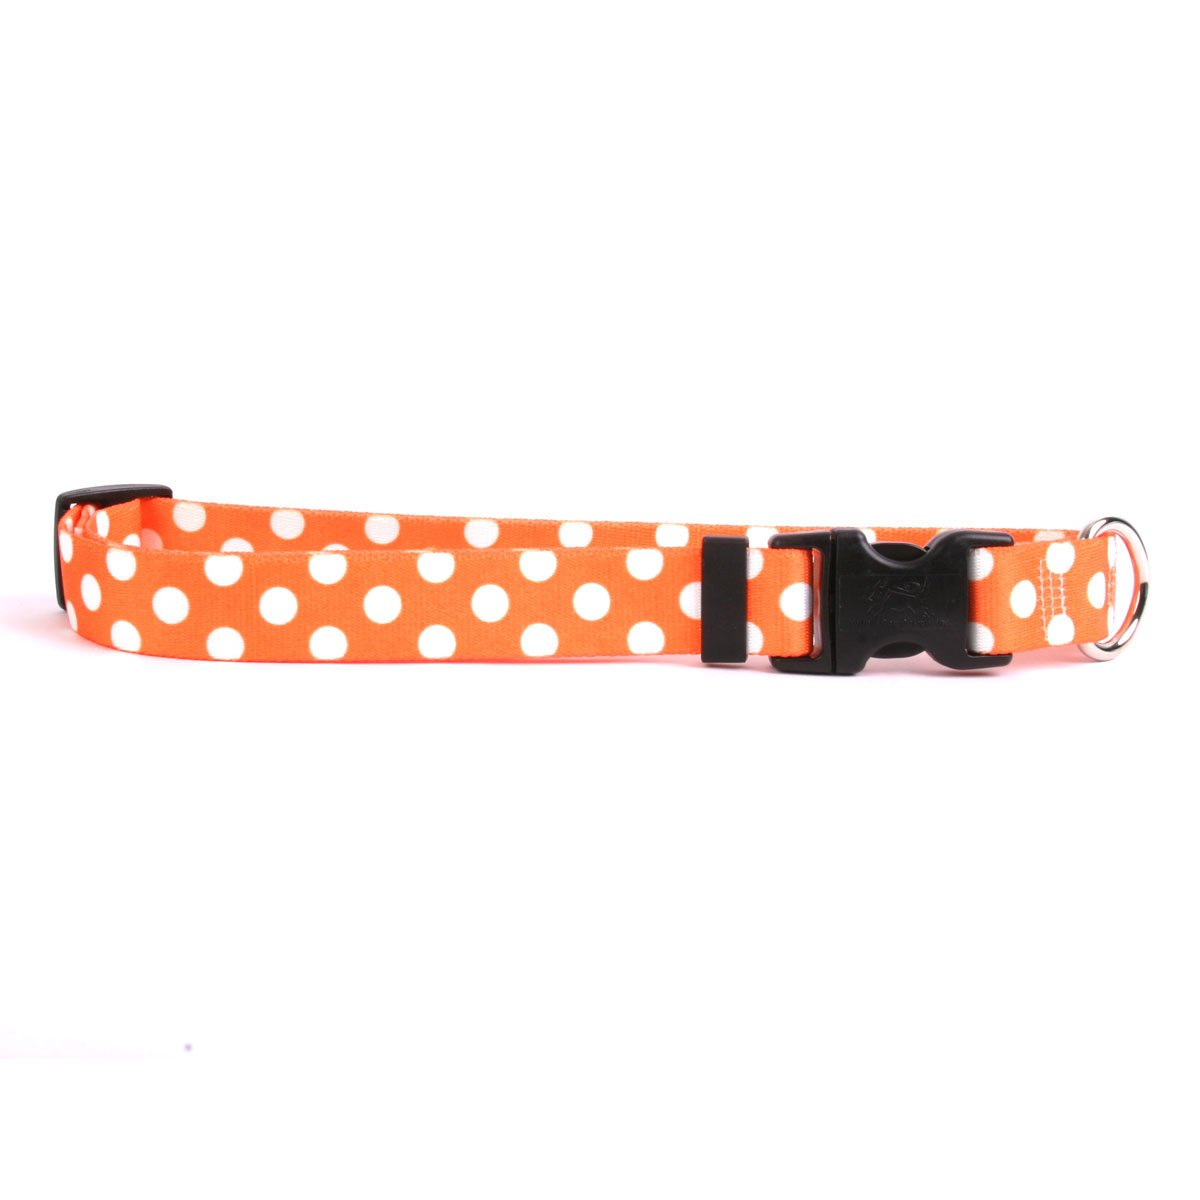 Yellow Dog Design Tangerine Polka Dot Dog Collar with Tag-A-Long ID Tag System-Small-3/4 Neck 10 to 14''